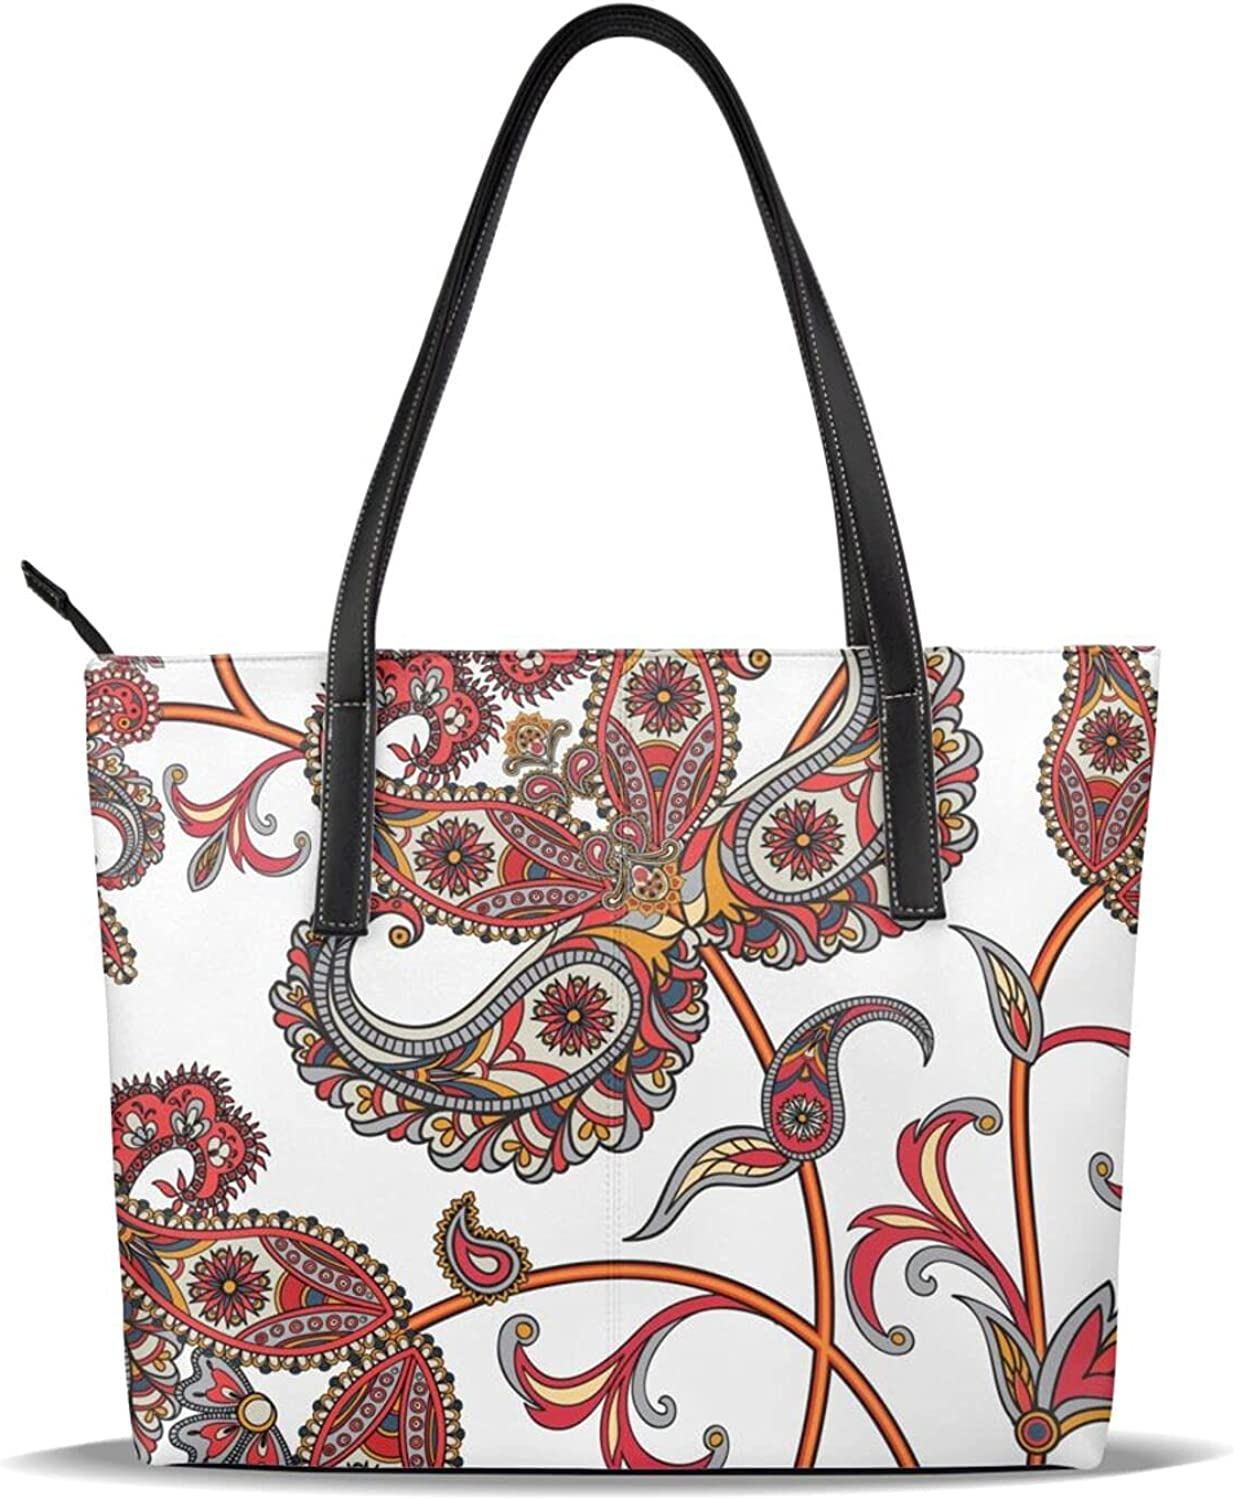 Flower with Paisley Women's Tote Lowest price challenge Handbag H Top Shoulder Bag Rapid rise Hand